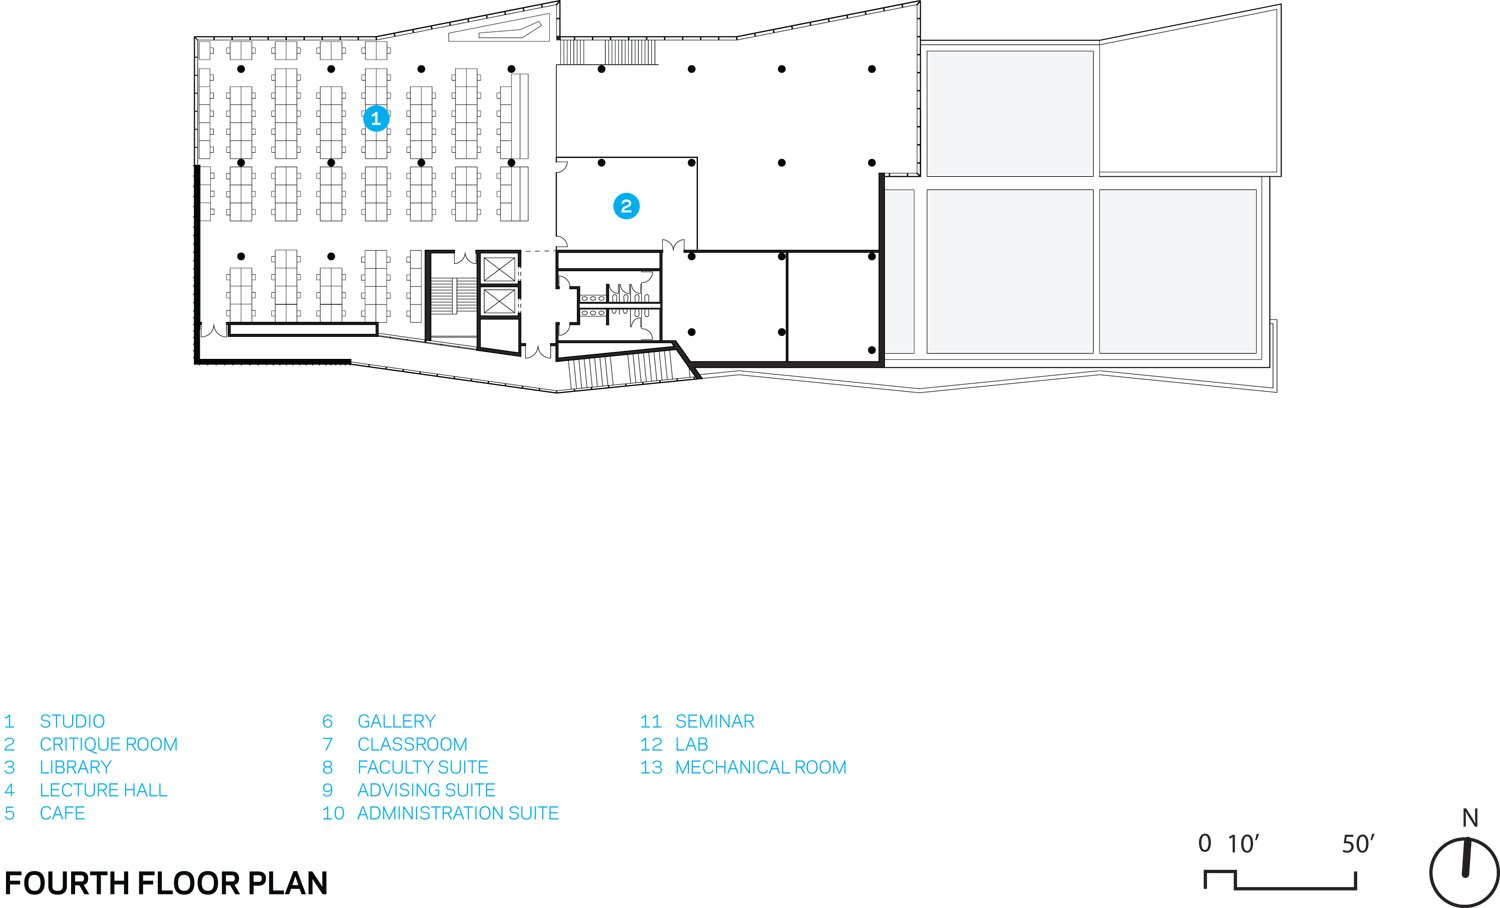 FOURTH FLOOR PLAN Courtesy of WEISS/MANFREDI}